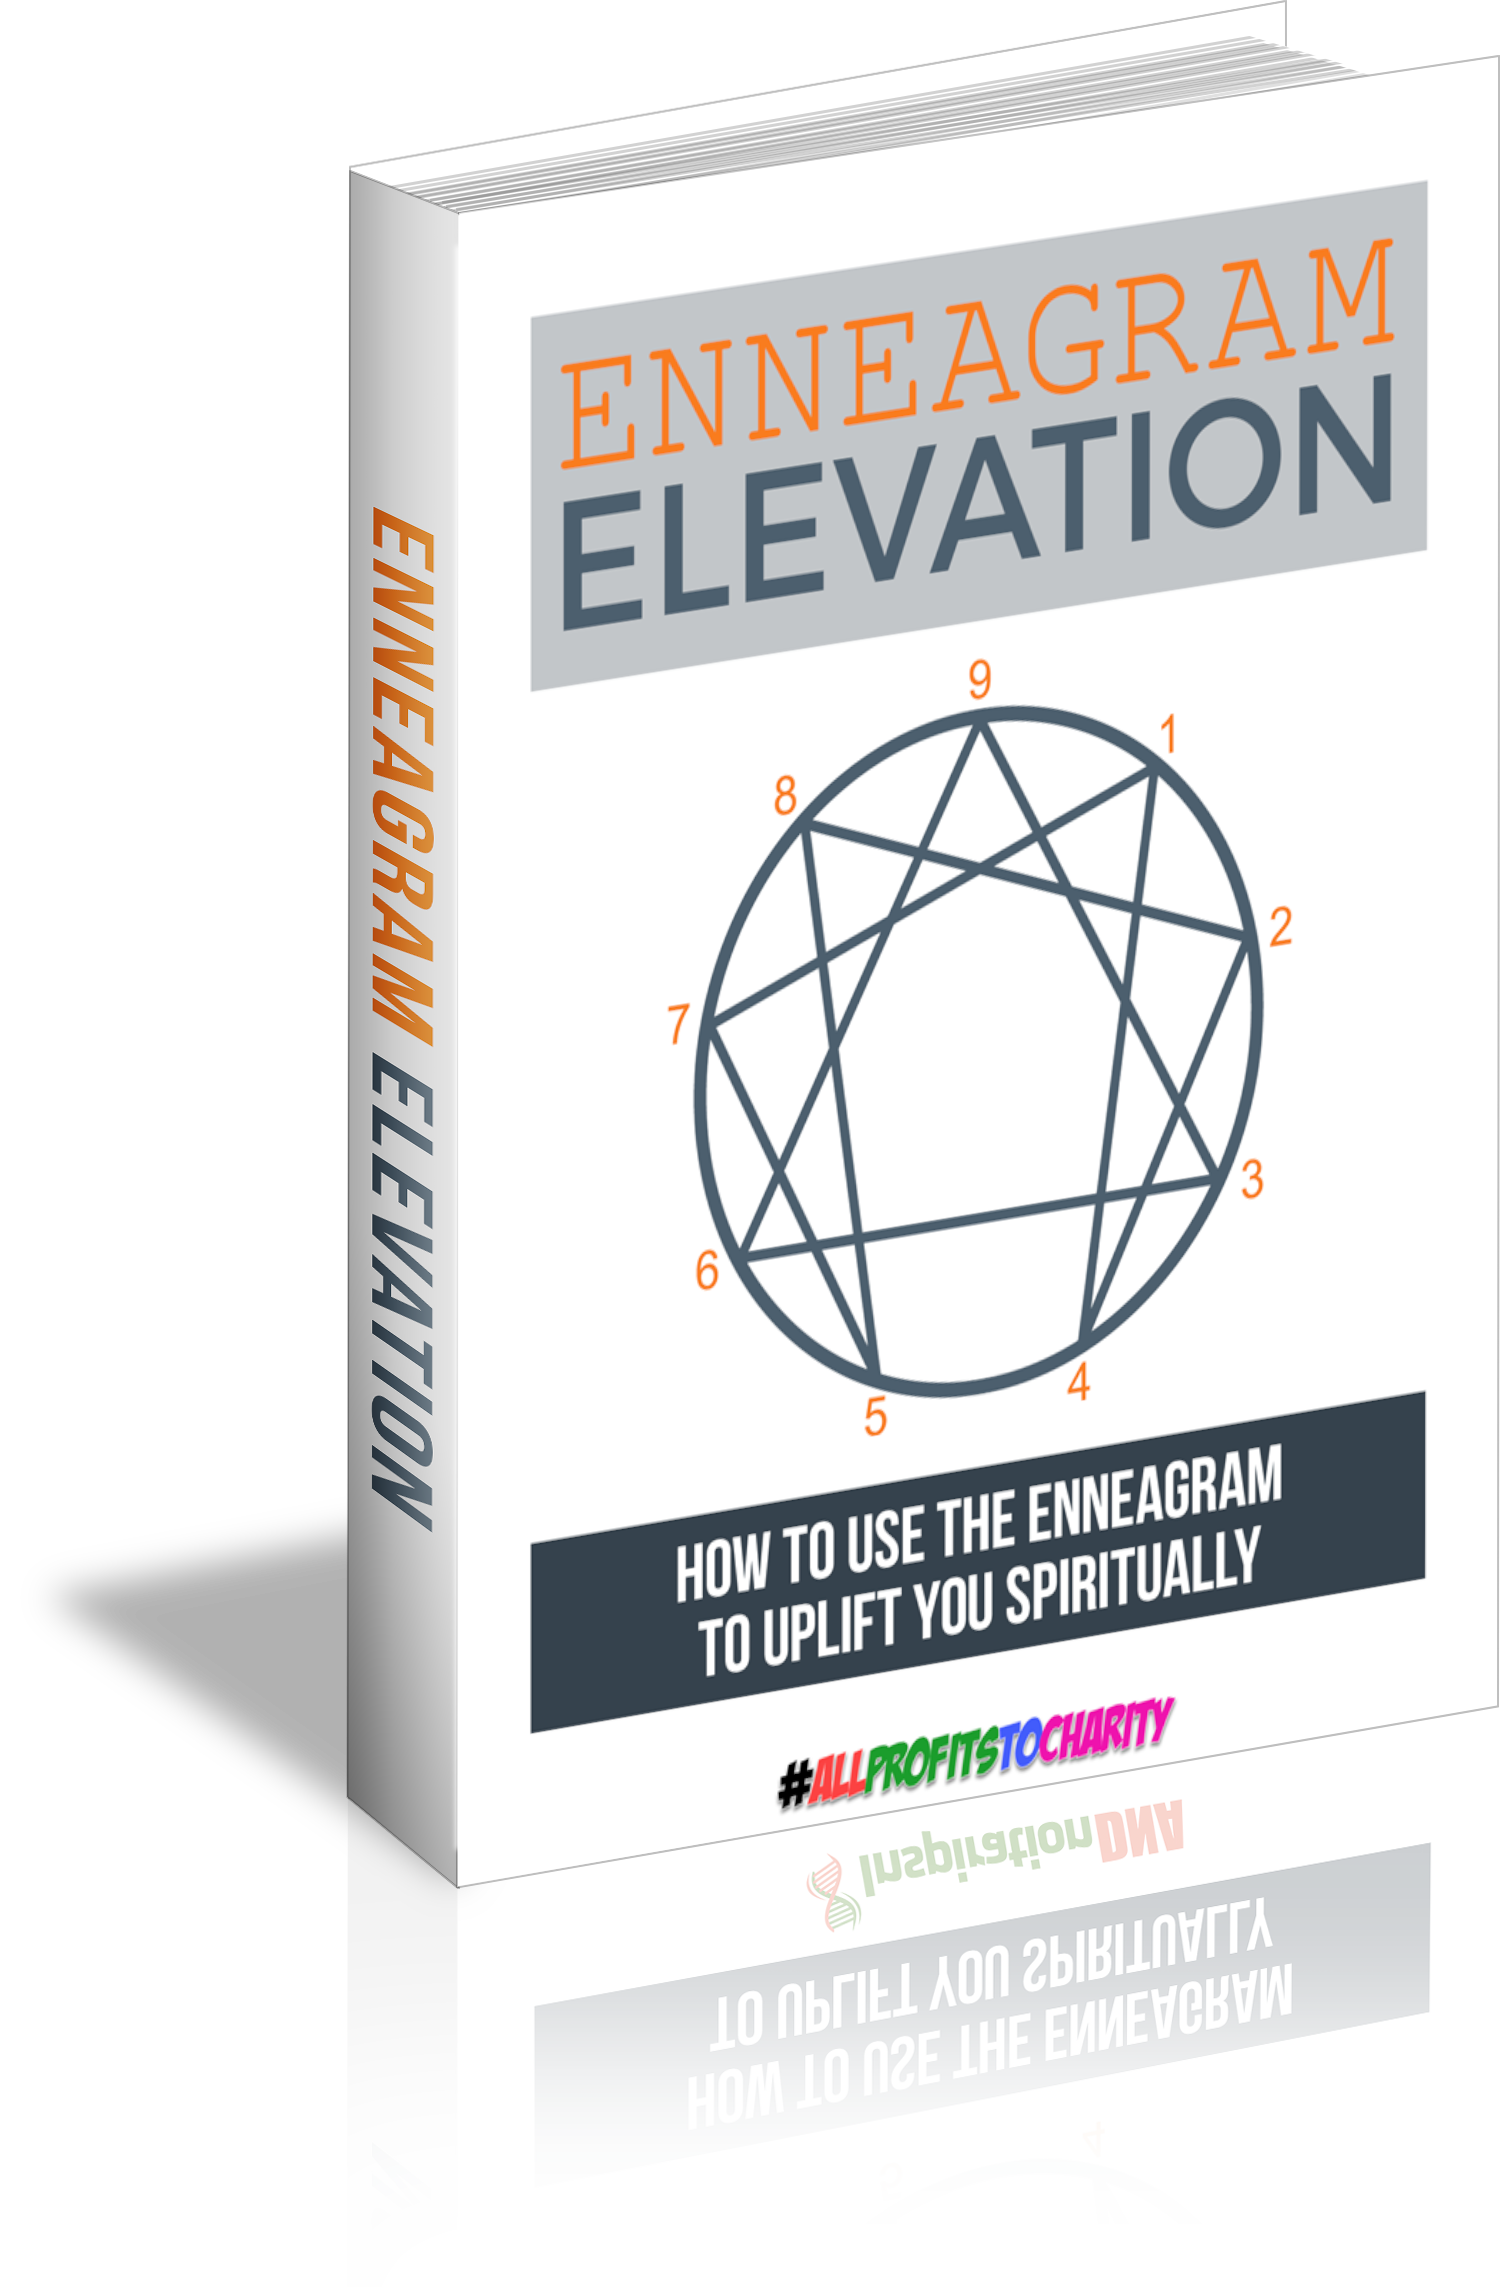 Enneagram Elevation cover